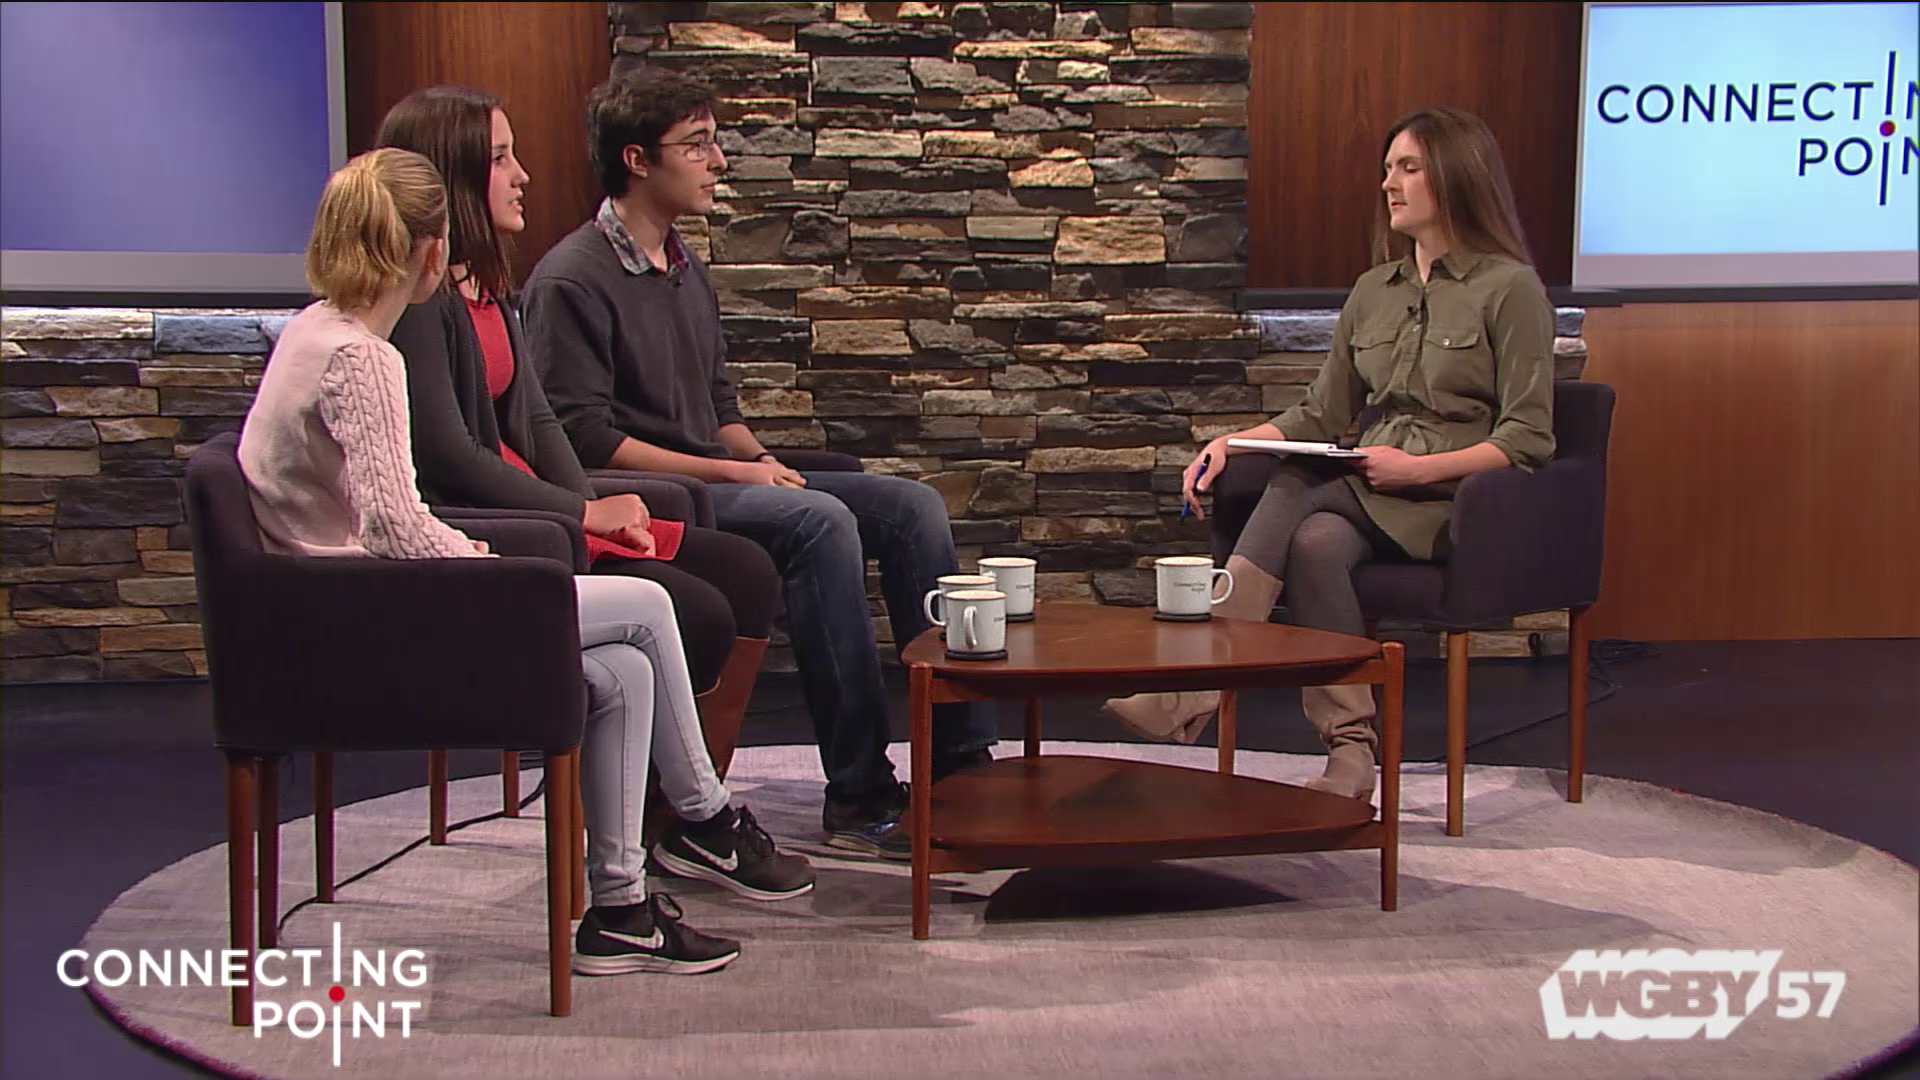 The tragic murder of 17 people at a school in Parkland Florida has spurred students to speak out against gun violence. Three students from Northampton, MA discuss the Northampton Student Walk Out, part of the #ENOUGH National School Walkout Movement movement, taking place on March 14, 2018.